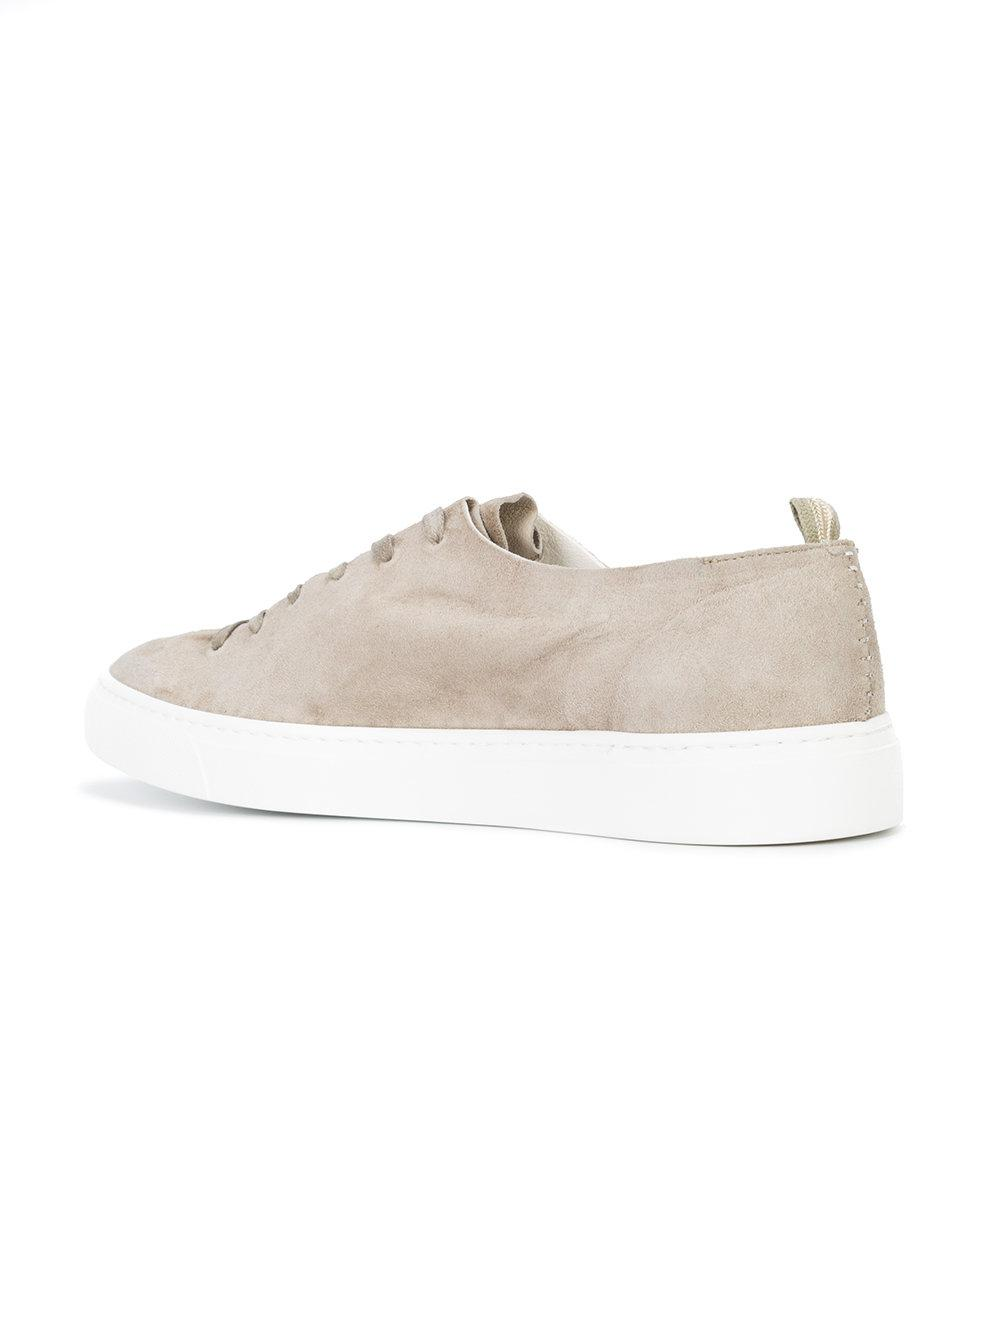 Officine Creative Suede Leggera Sneakers in Grey (Grey)